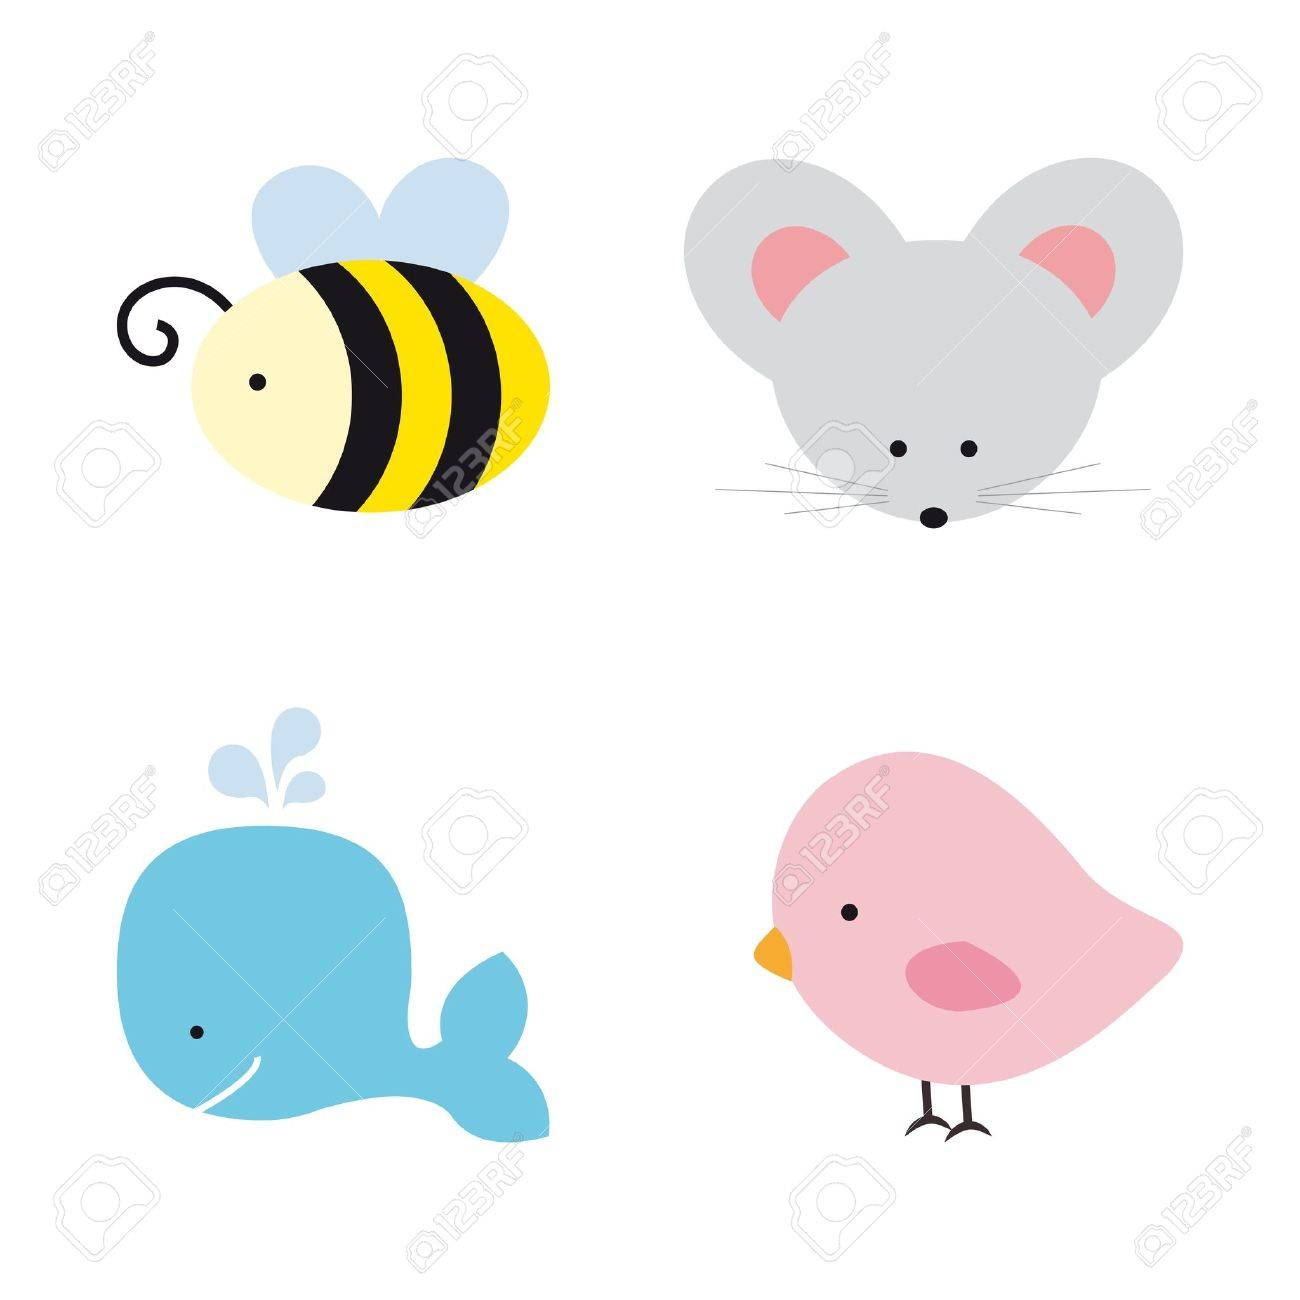 Cute Animals Stock Vector - 13835883